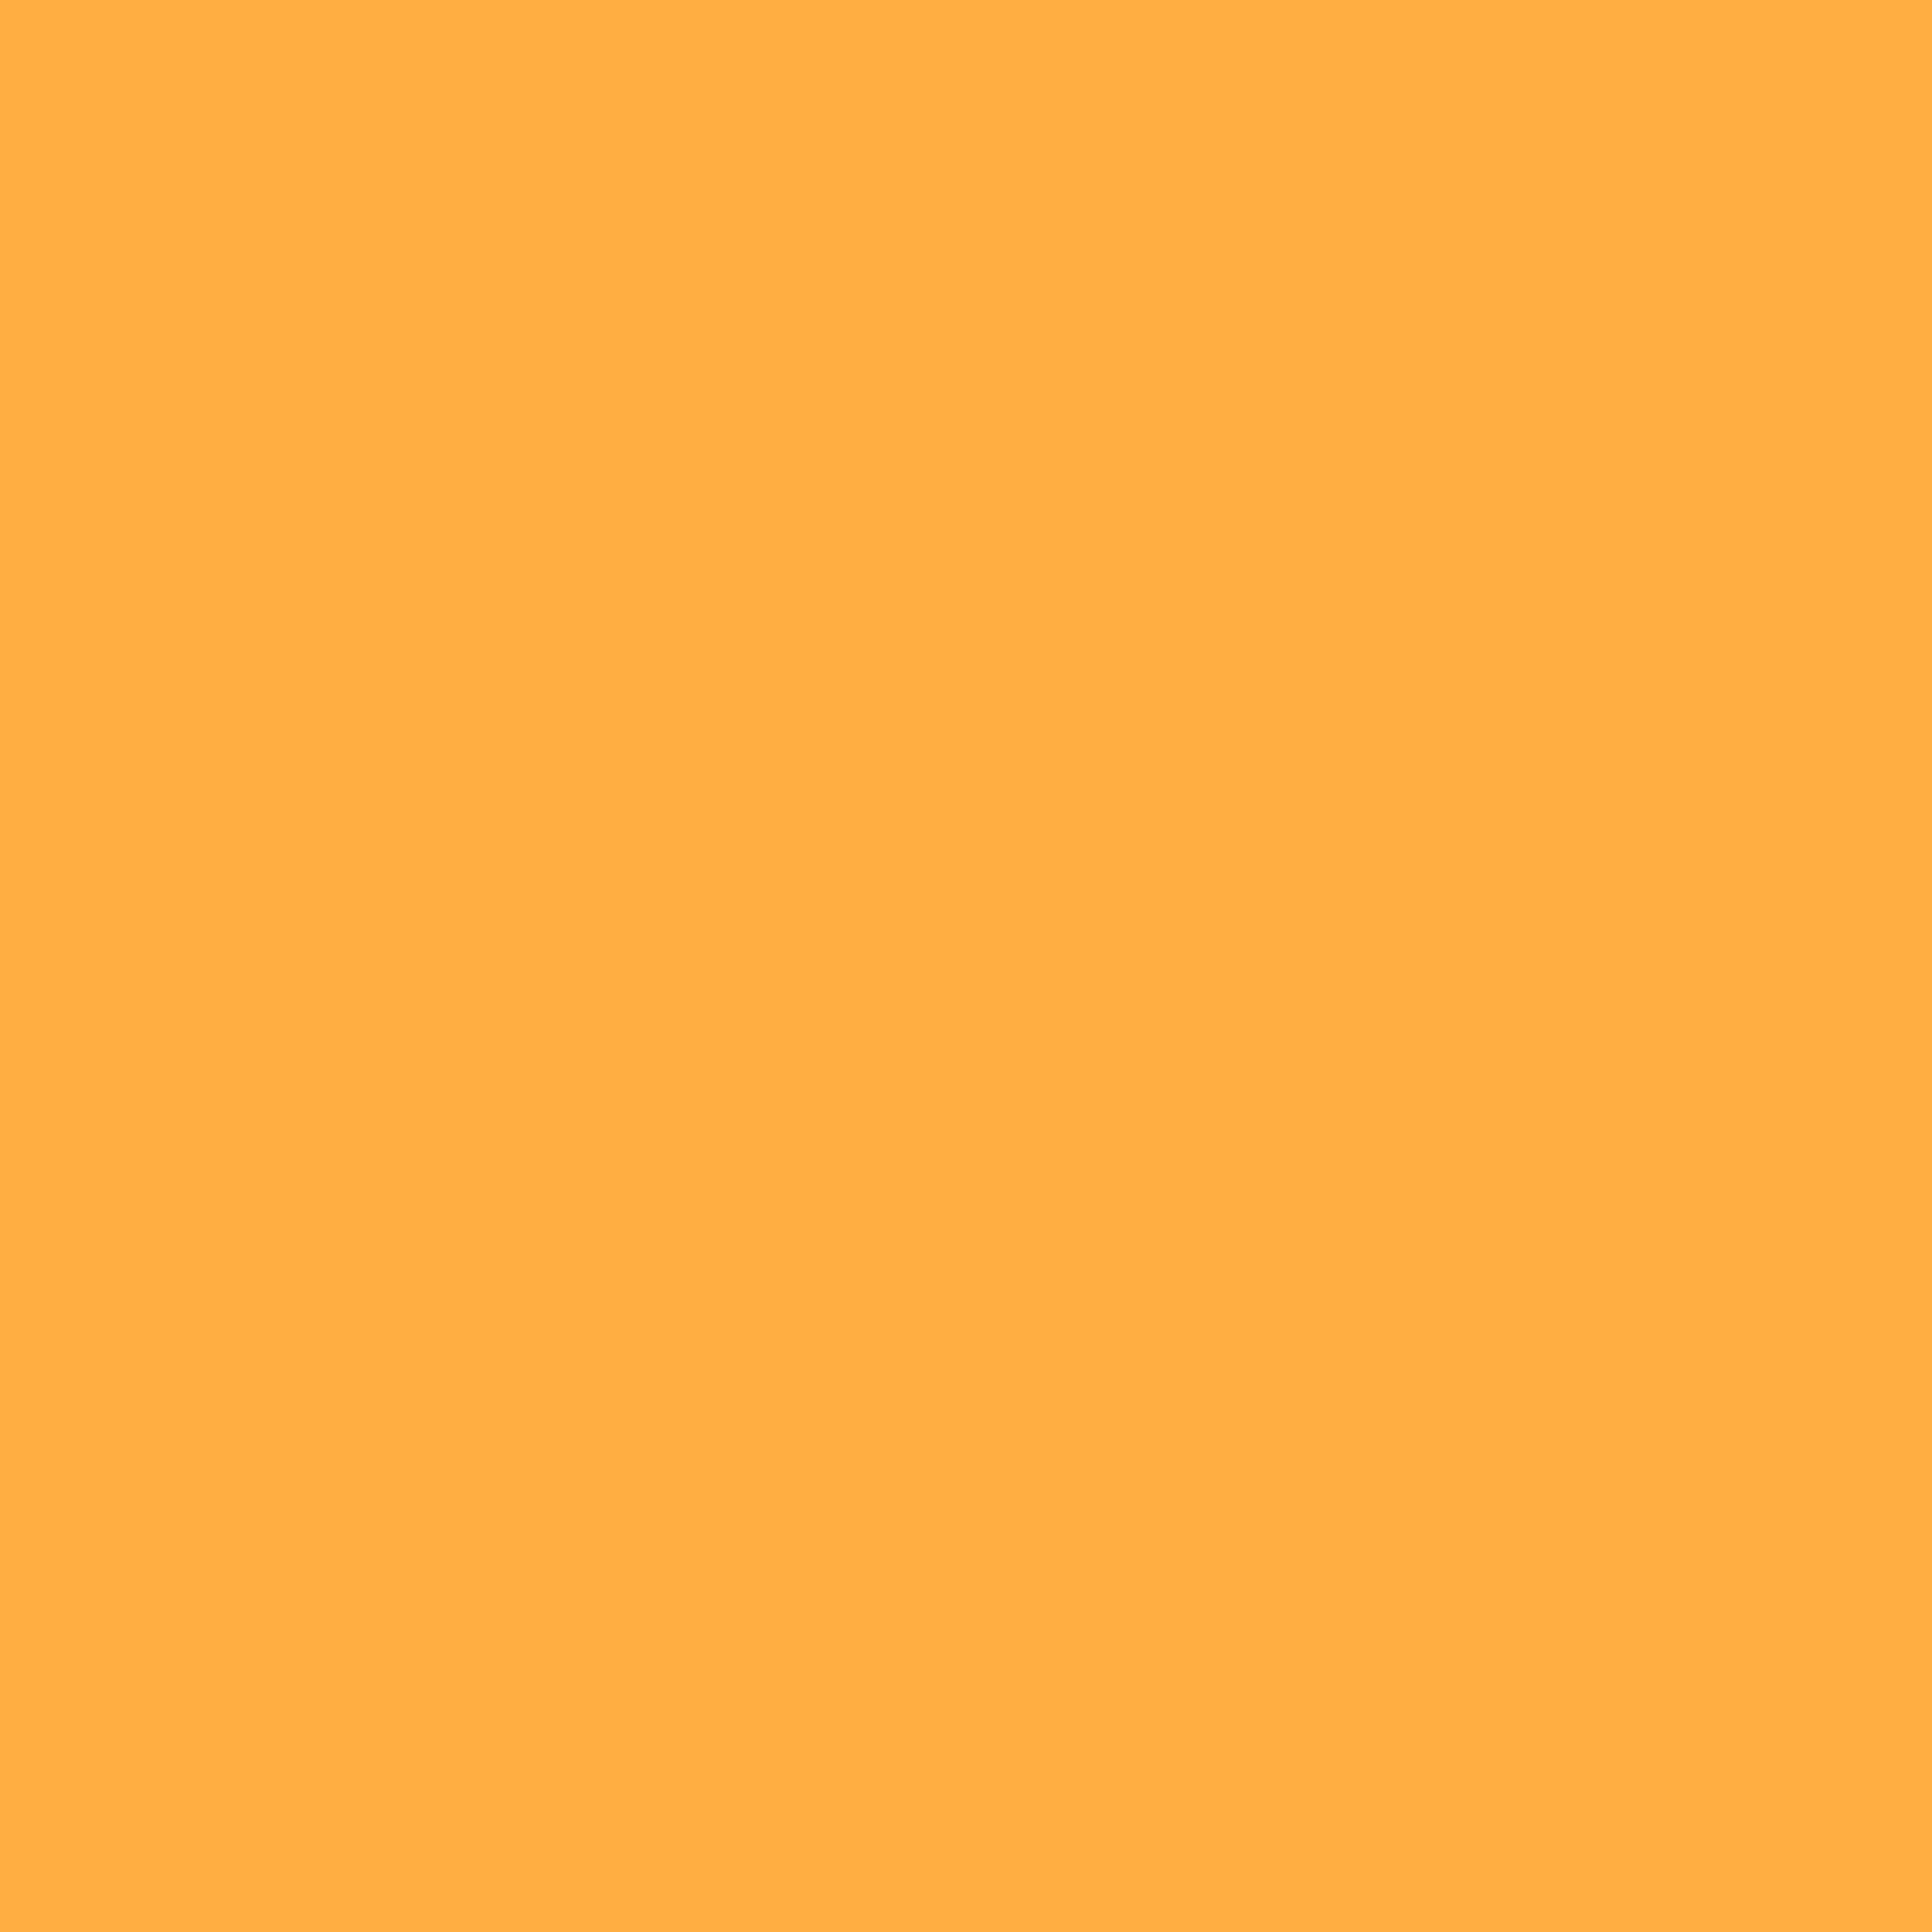 2732x2732 Yellow Orange Solid Color Background